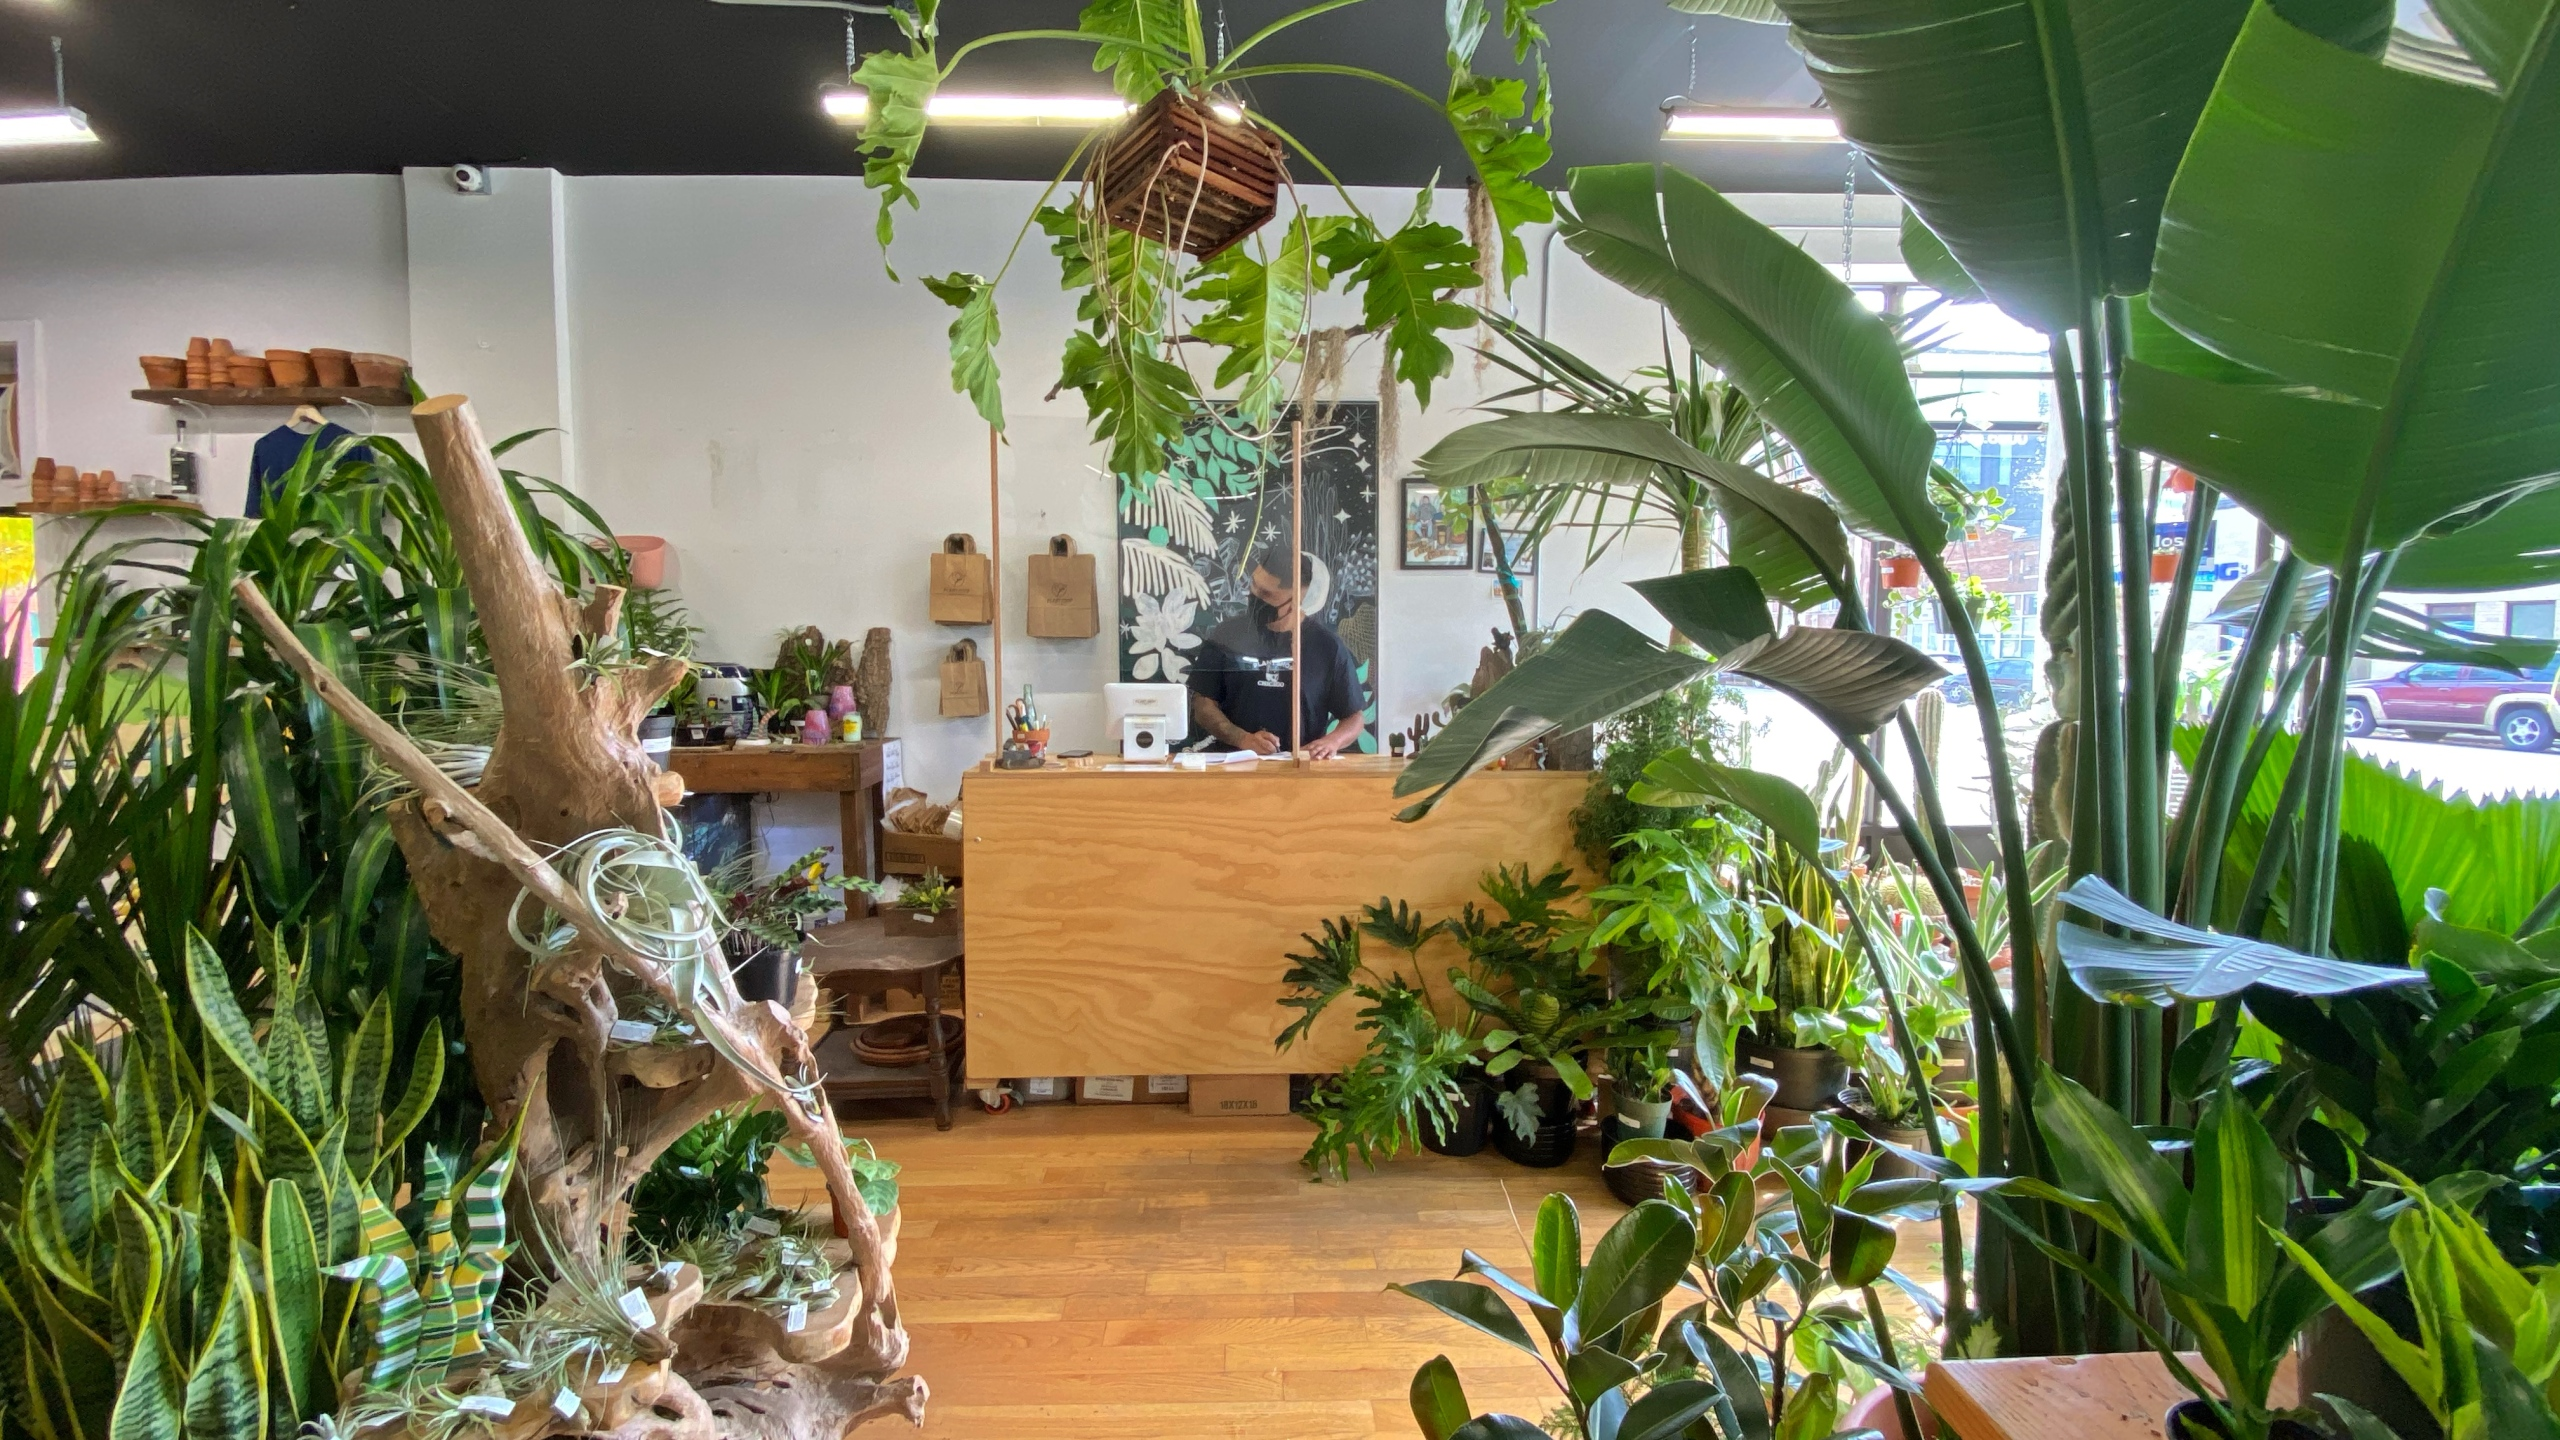 Business thrives as people turn to plants for comfort and stability during pandemic